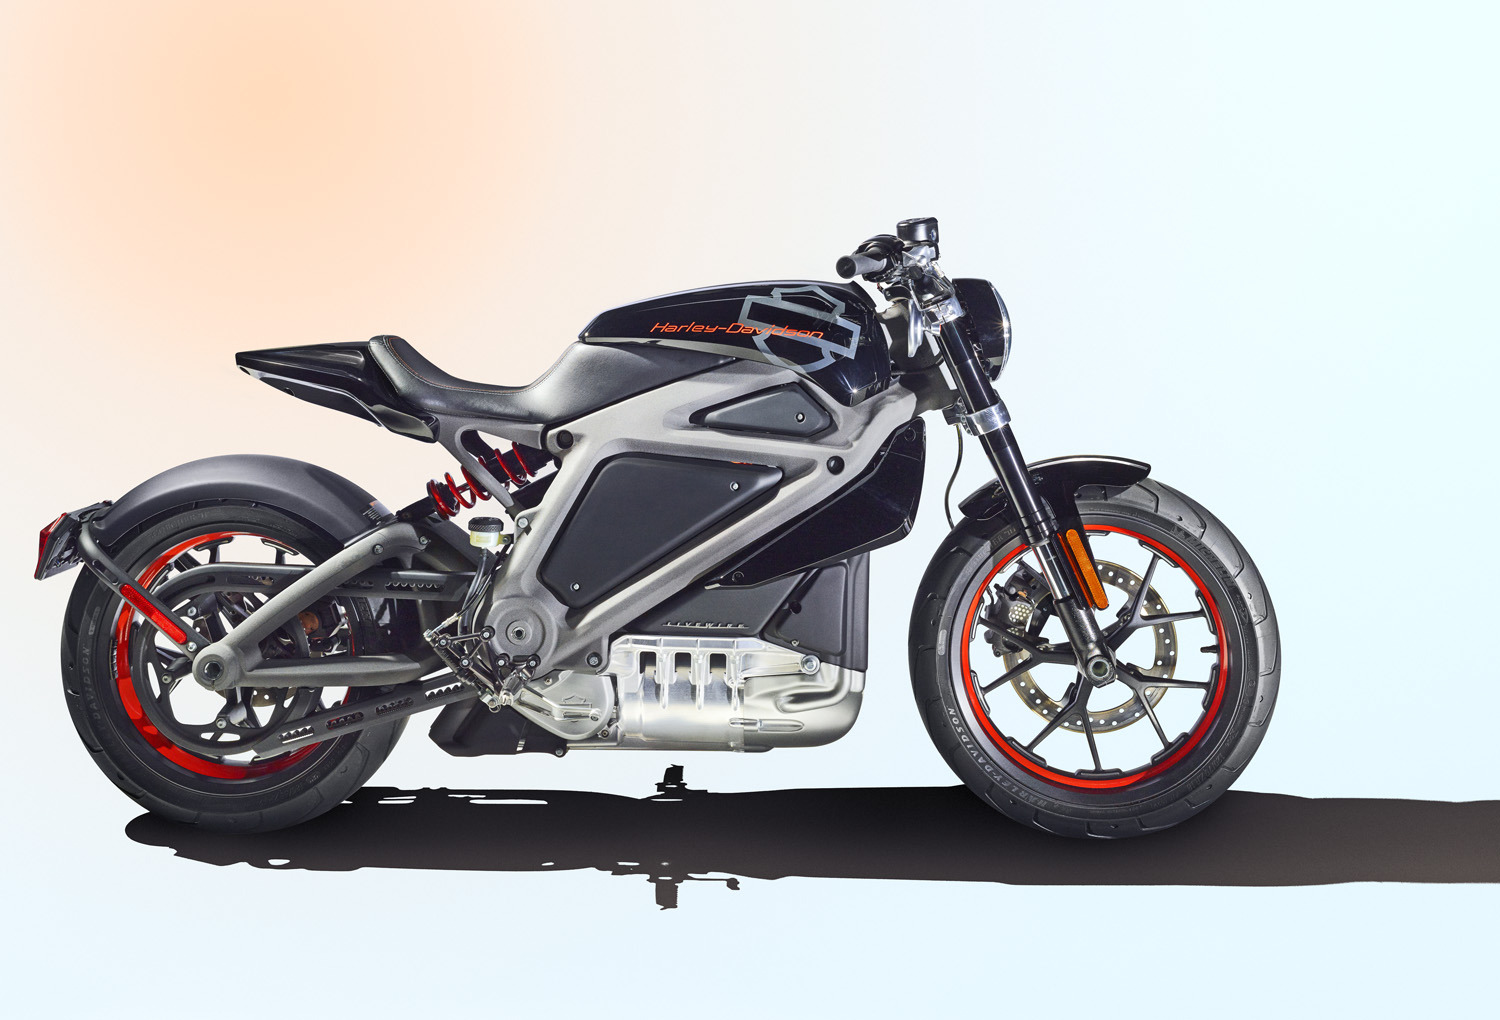 Harley davidson s e bike plans are low on juice gearopen for Motor city harley davidson hours